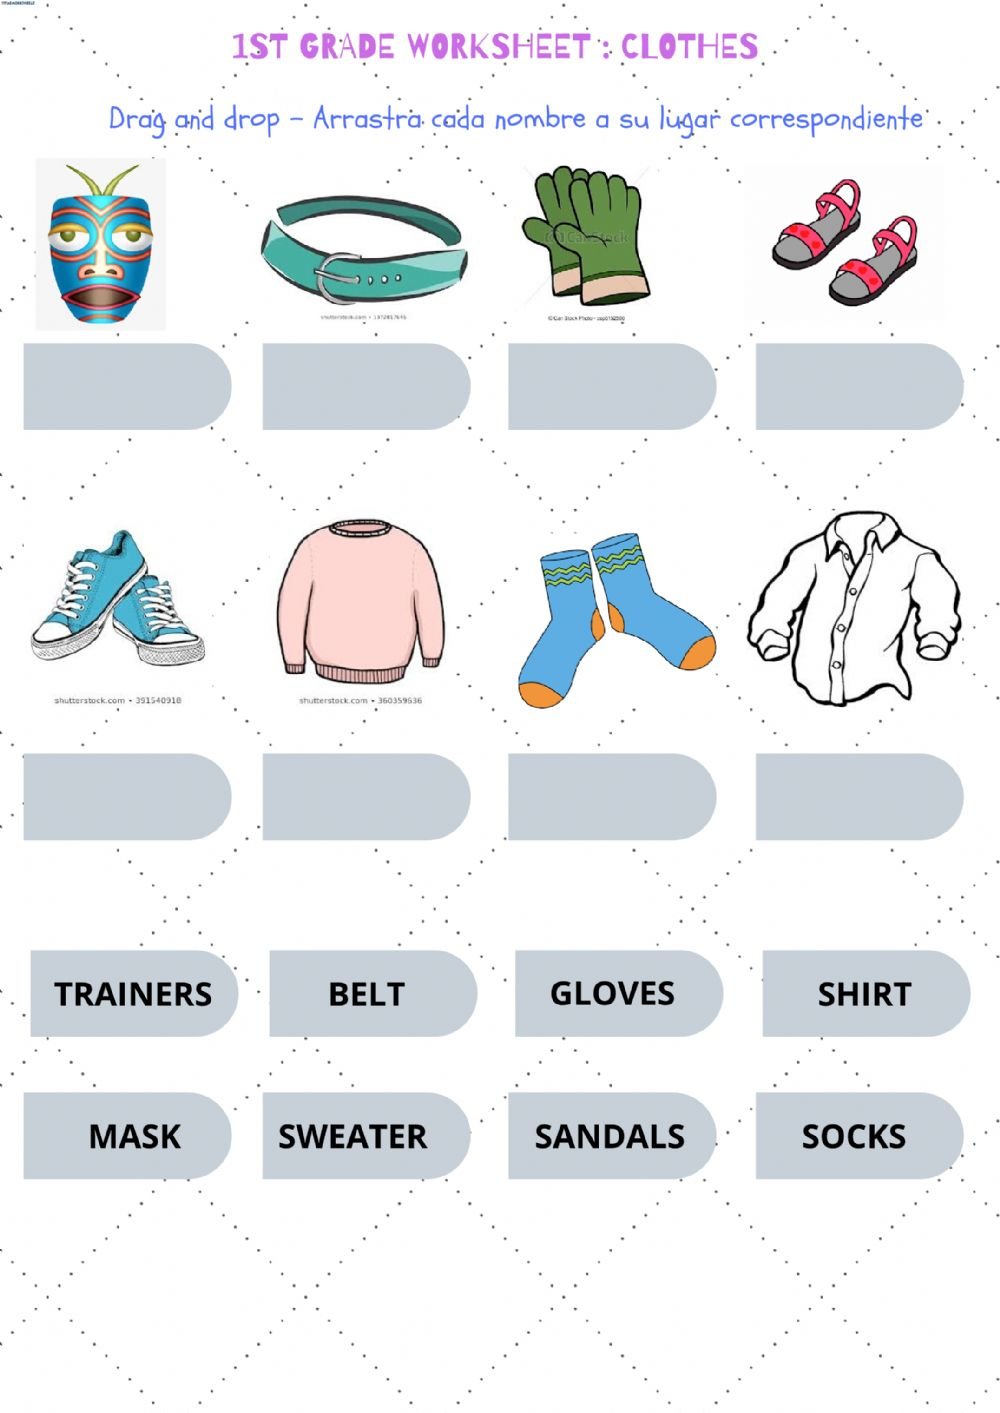 hight resolution of 3rd grade clothes worksheet